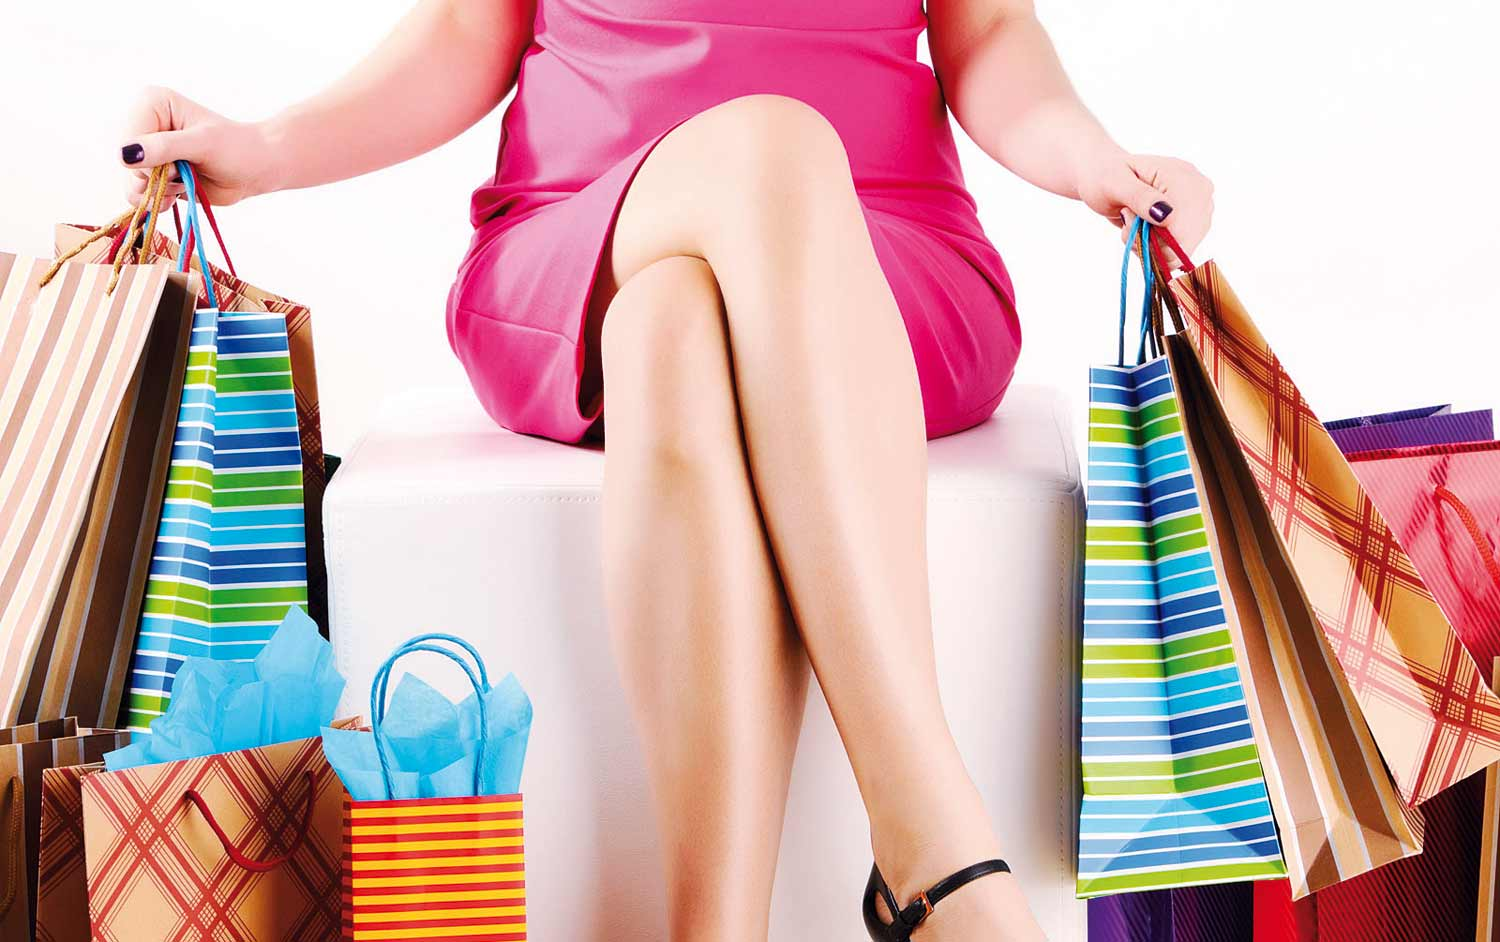 shopping addiction article review But how do you know when some harmless retail therapy is turning into a shopping addiction harmless retail therapy or shopaholism a review article published.